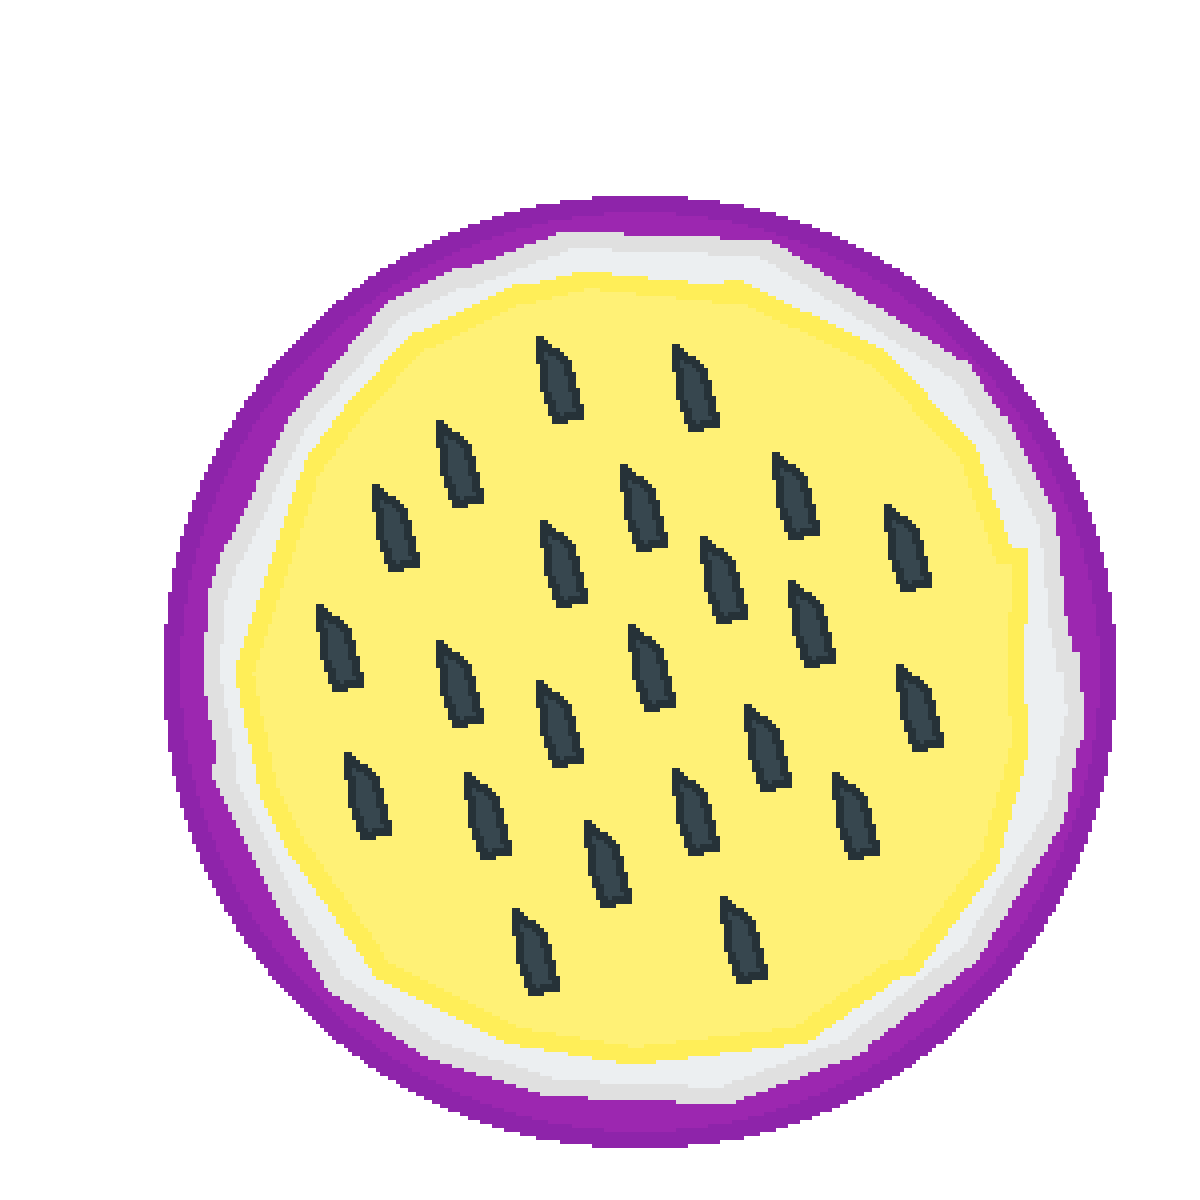 Passionfruit by icebear